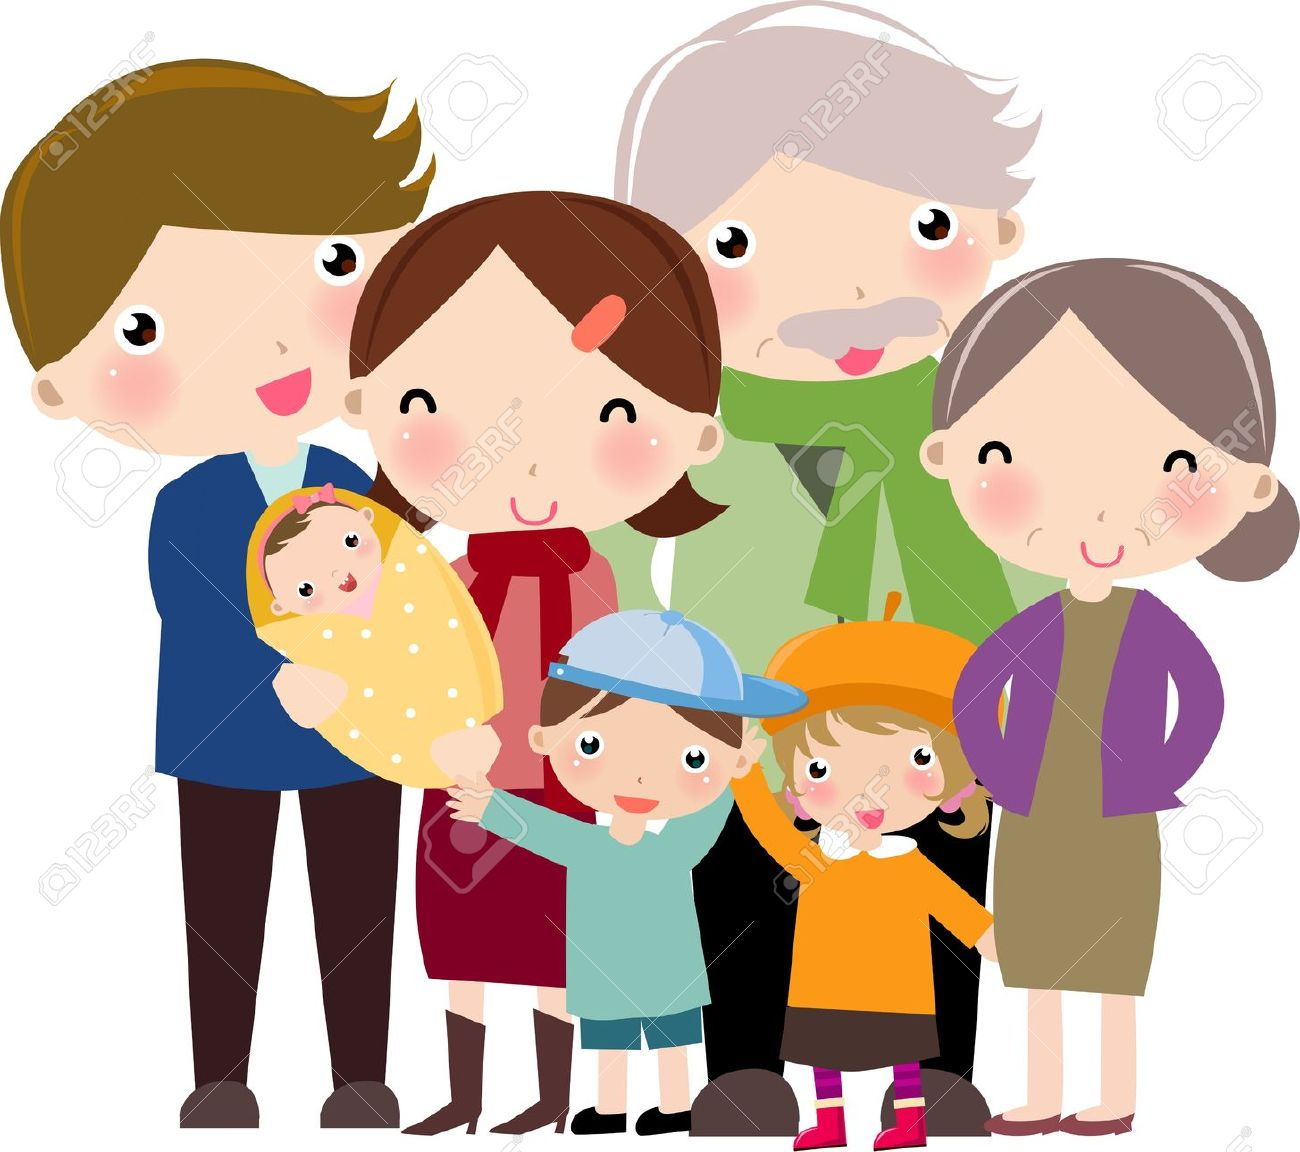 Free Family Clipart Free Clipart Graphic-Free Family Clipart Free Clipart Graphics Images And Photos-14